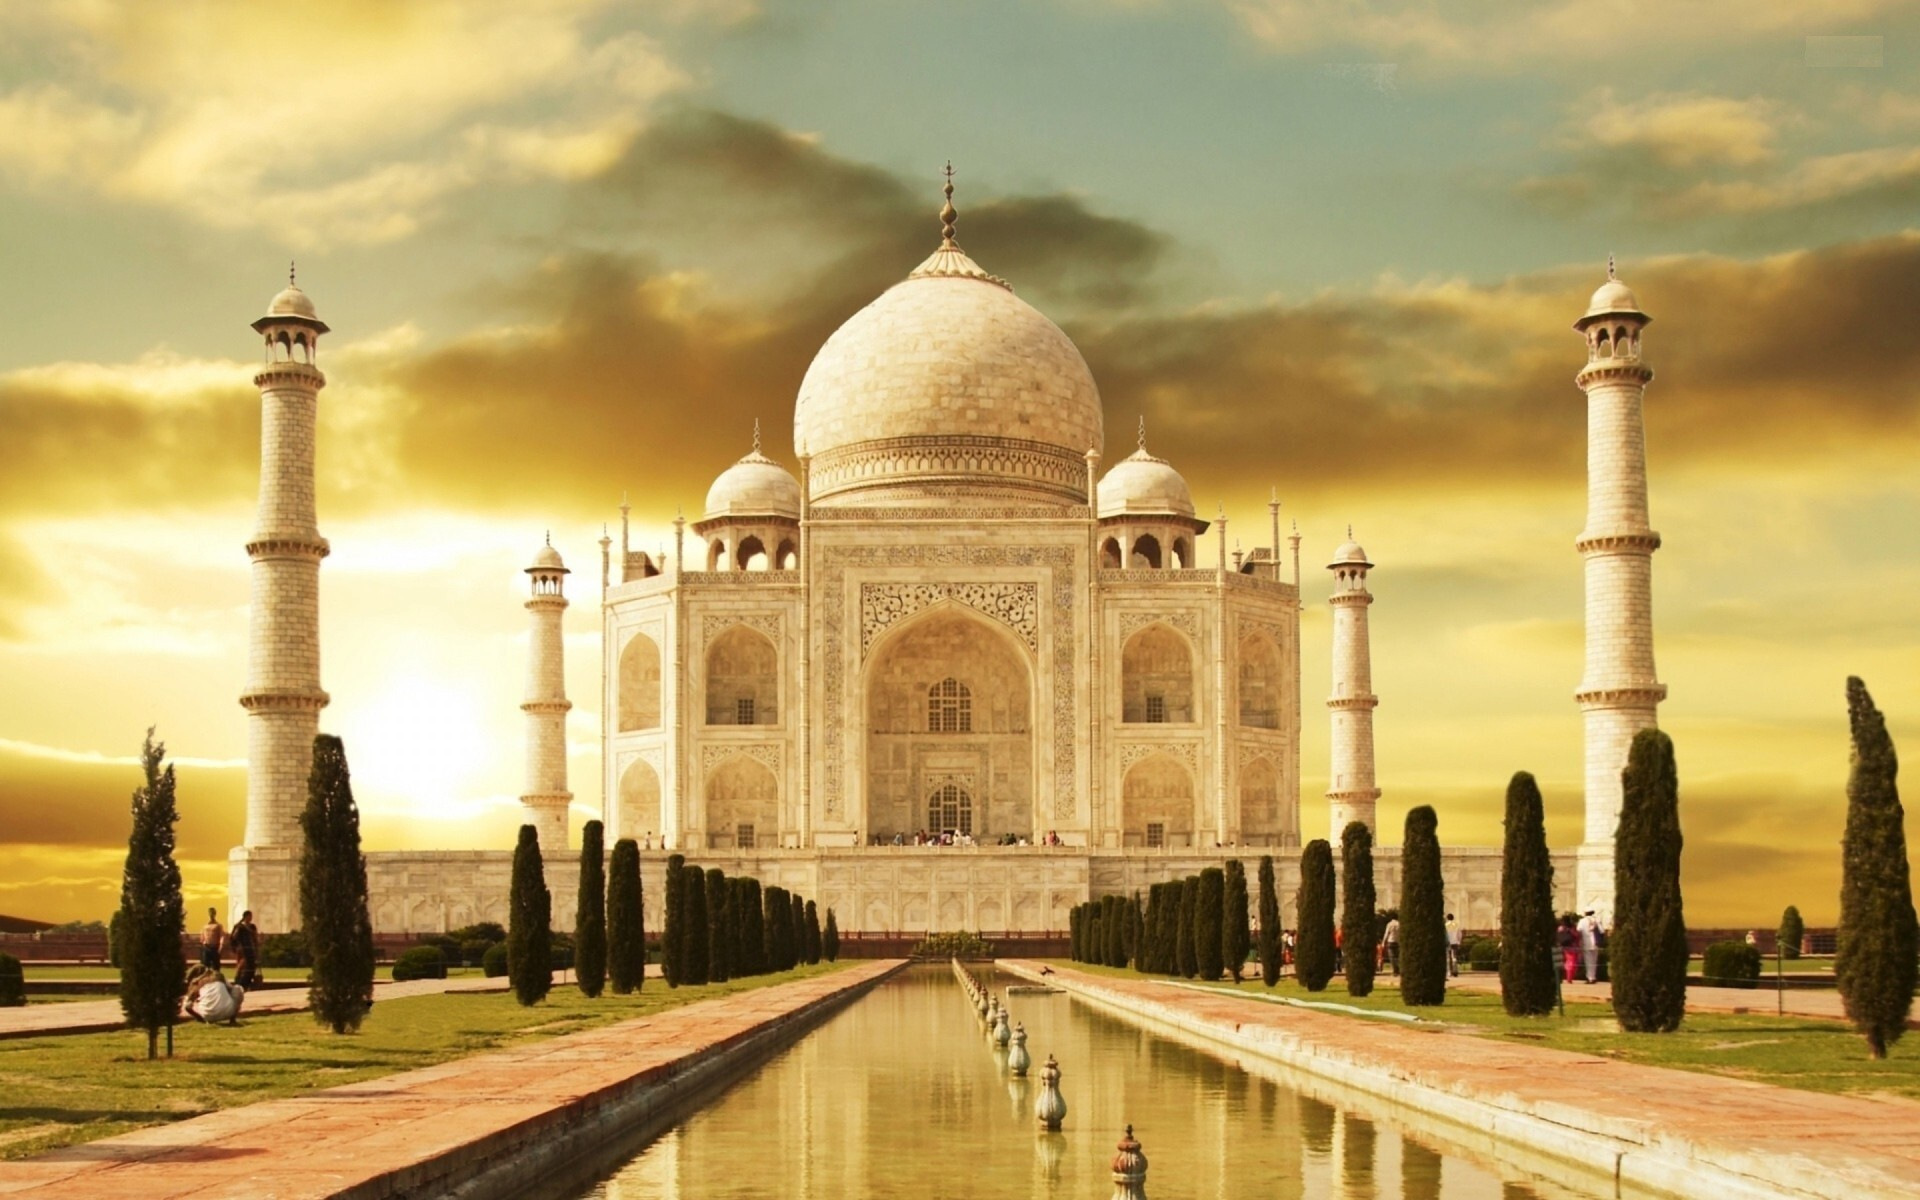 Taj Mahal Hd Wallpapers Images Pictures Photos Download